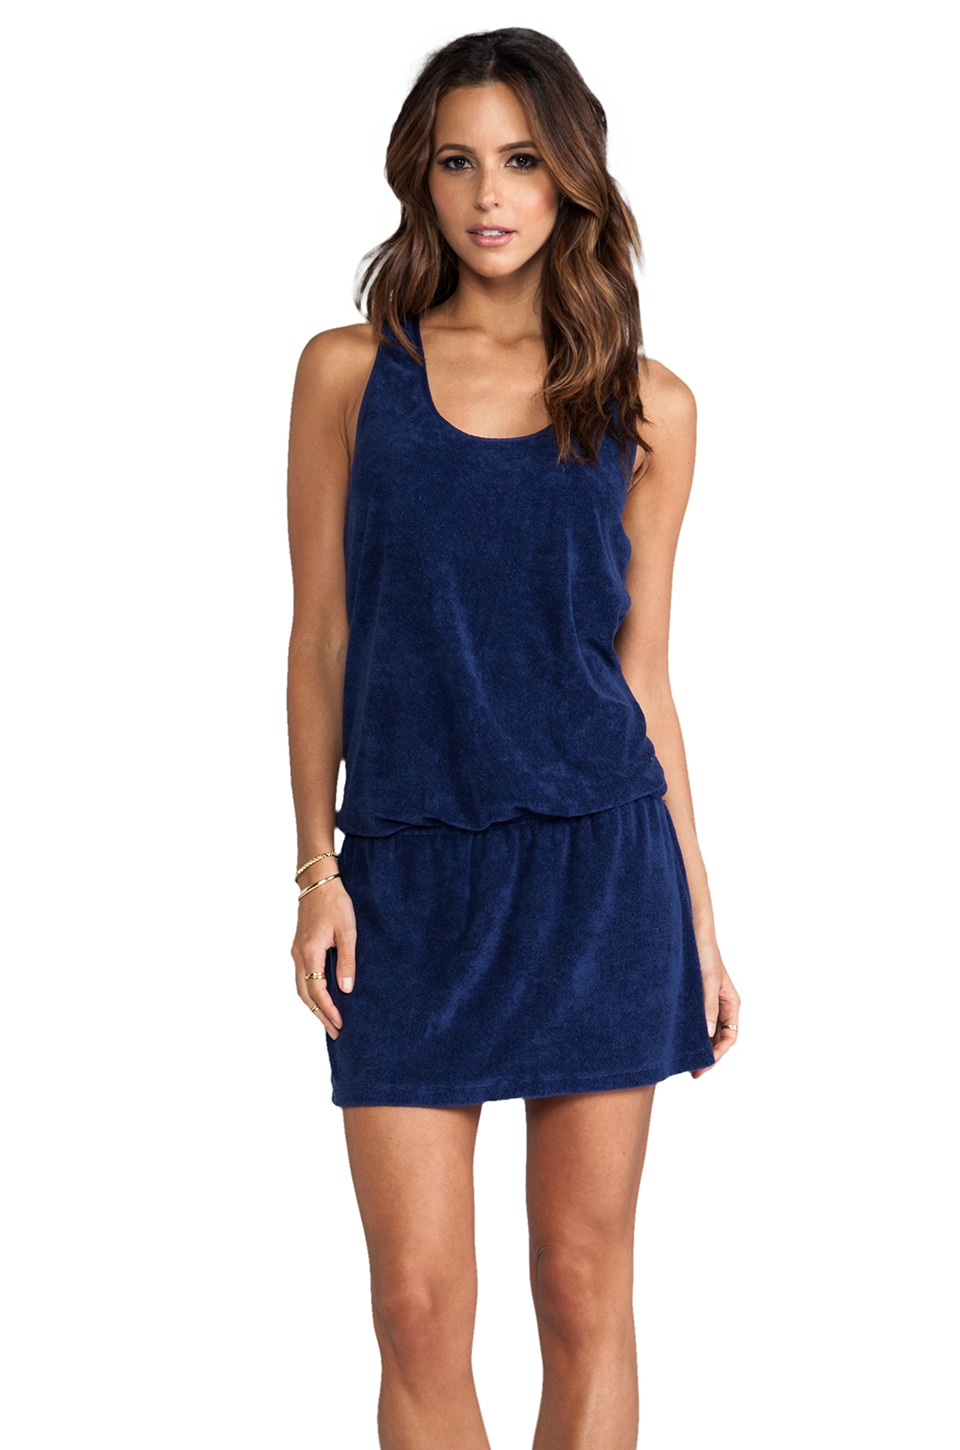 Splendid Terry Cover up in Navy